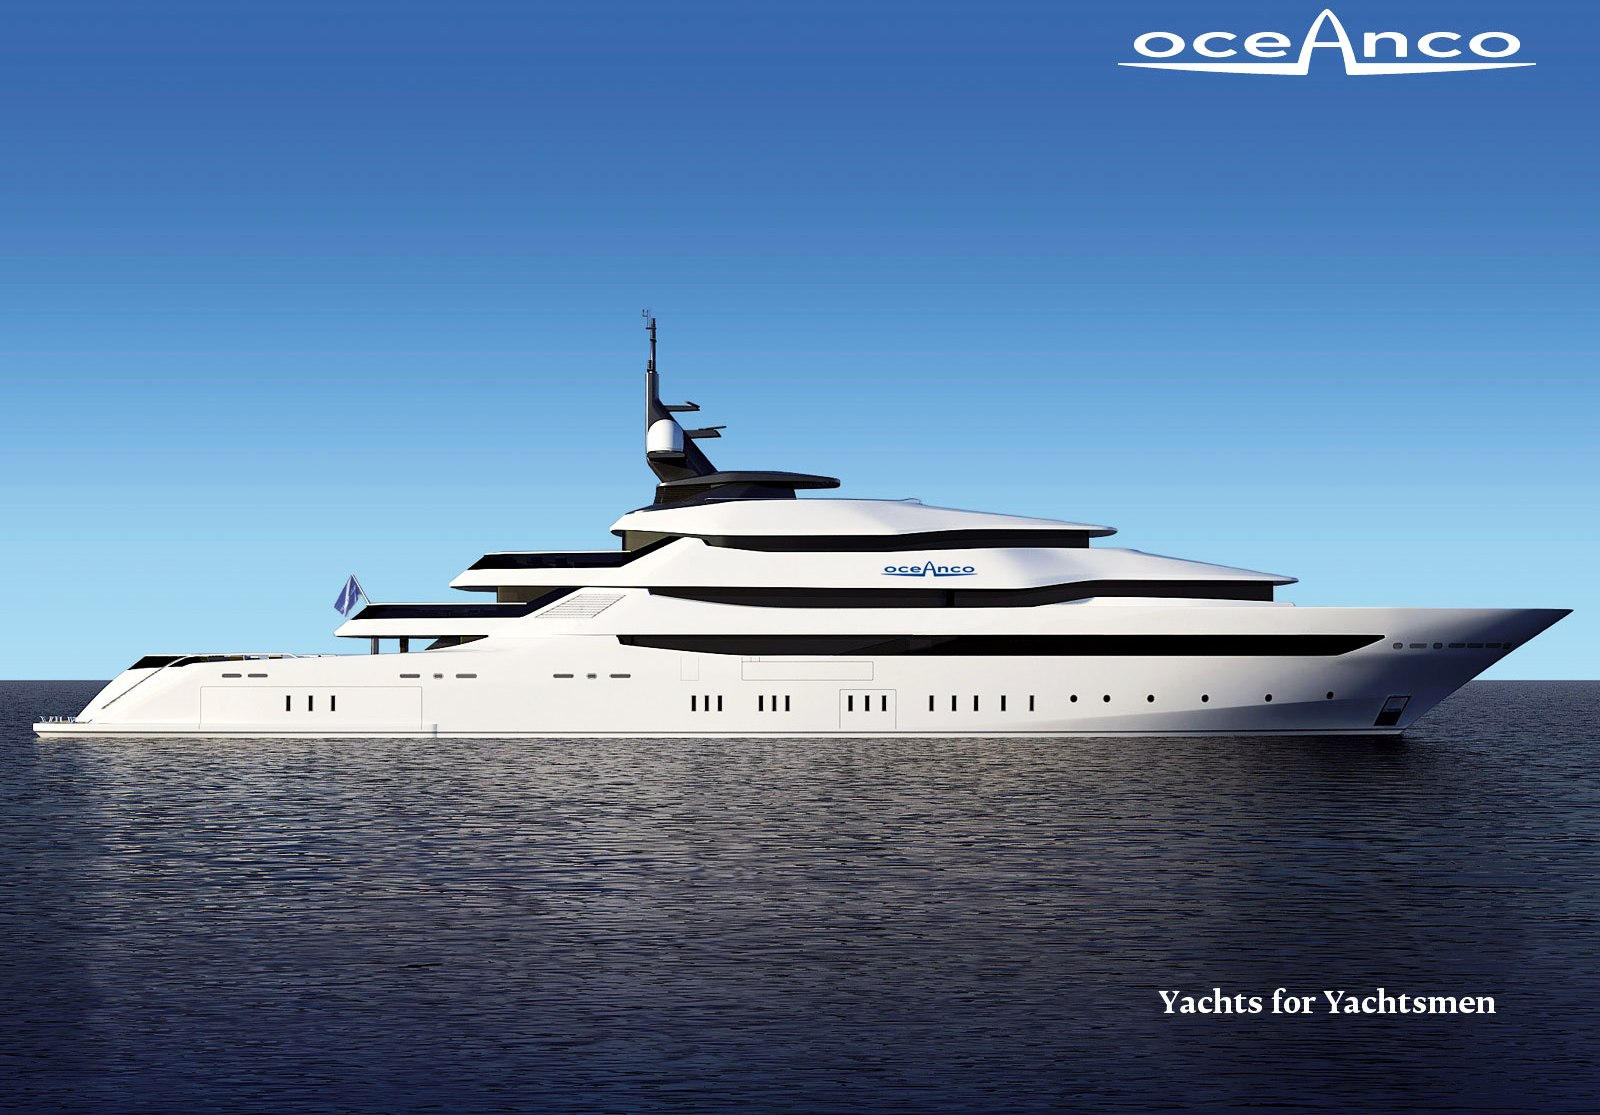 Subjects: Oceanco, Superyacht Wallpaper, yacht wallpaper